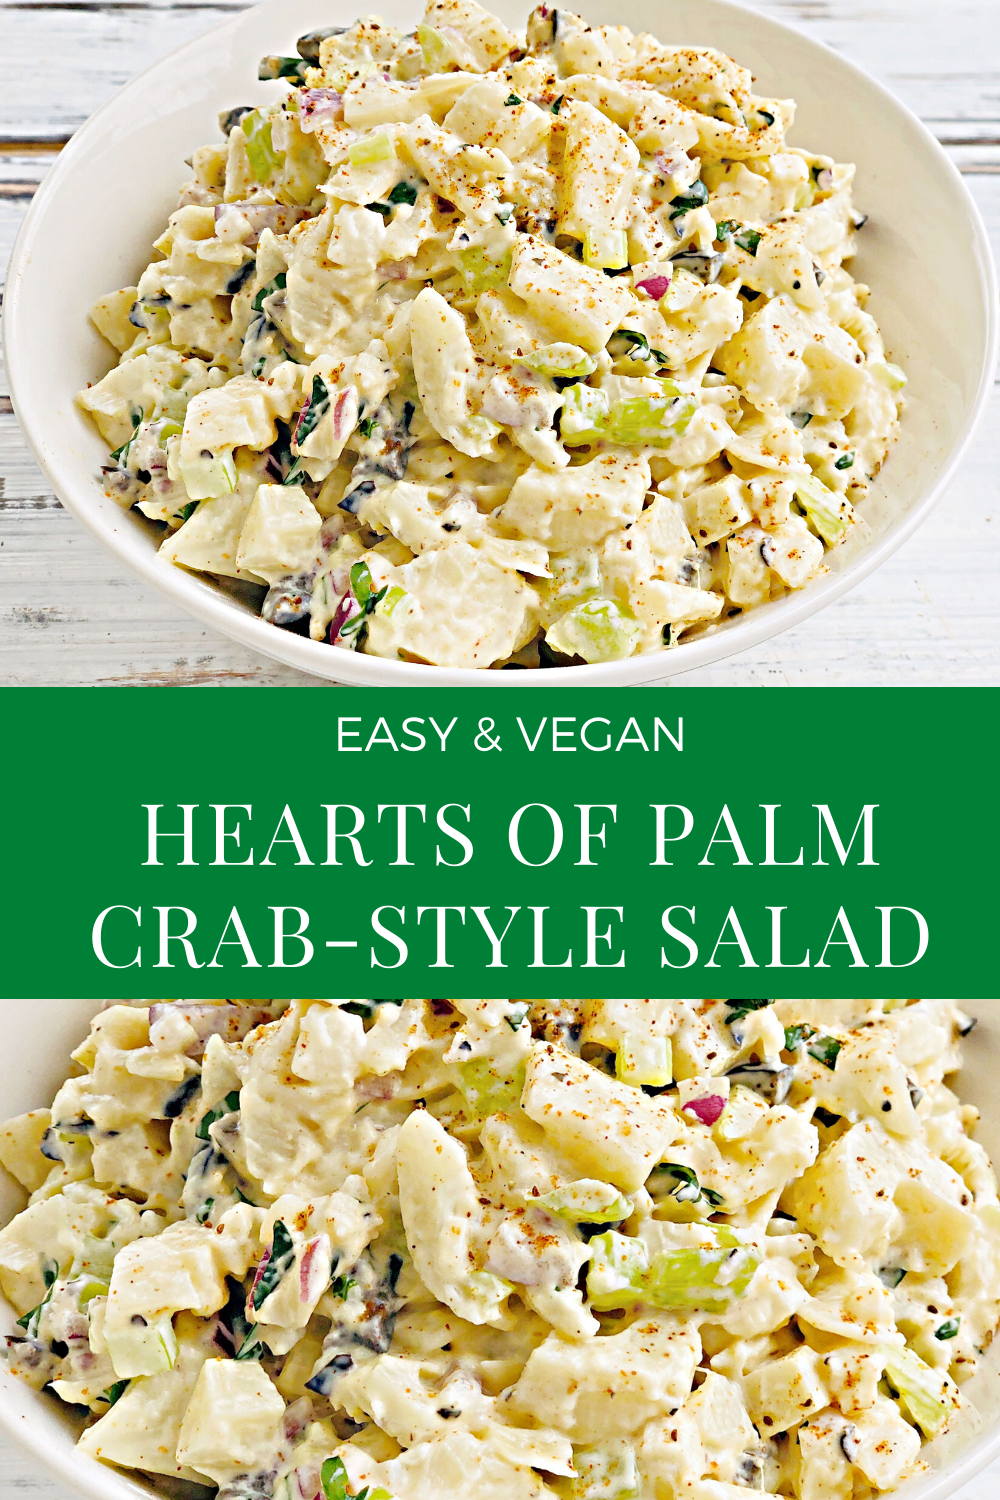 Hearts of Palm Crab-Style Salad - An easy recipe for a plant-based version of crab salad.  Hearts of palm, crisp celery, red onions, black olives, and seasonings are combined with a creamy dressing for a salad that is ready in minutes.  Perfect for a light lunch or snack. via @thiswifecooks